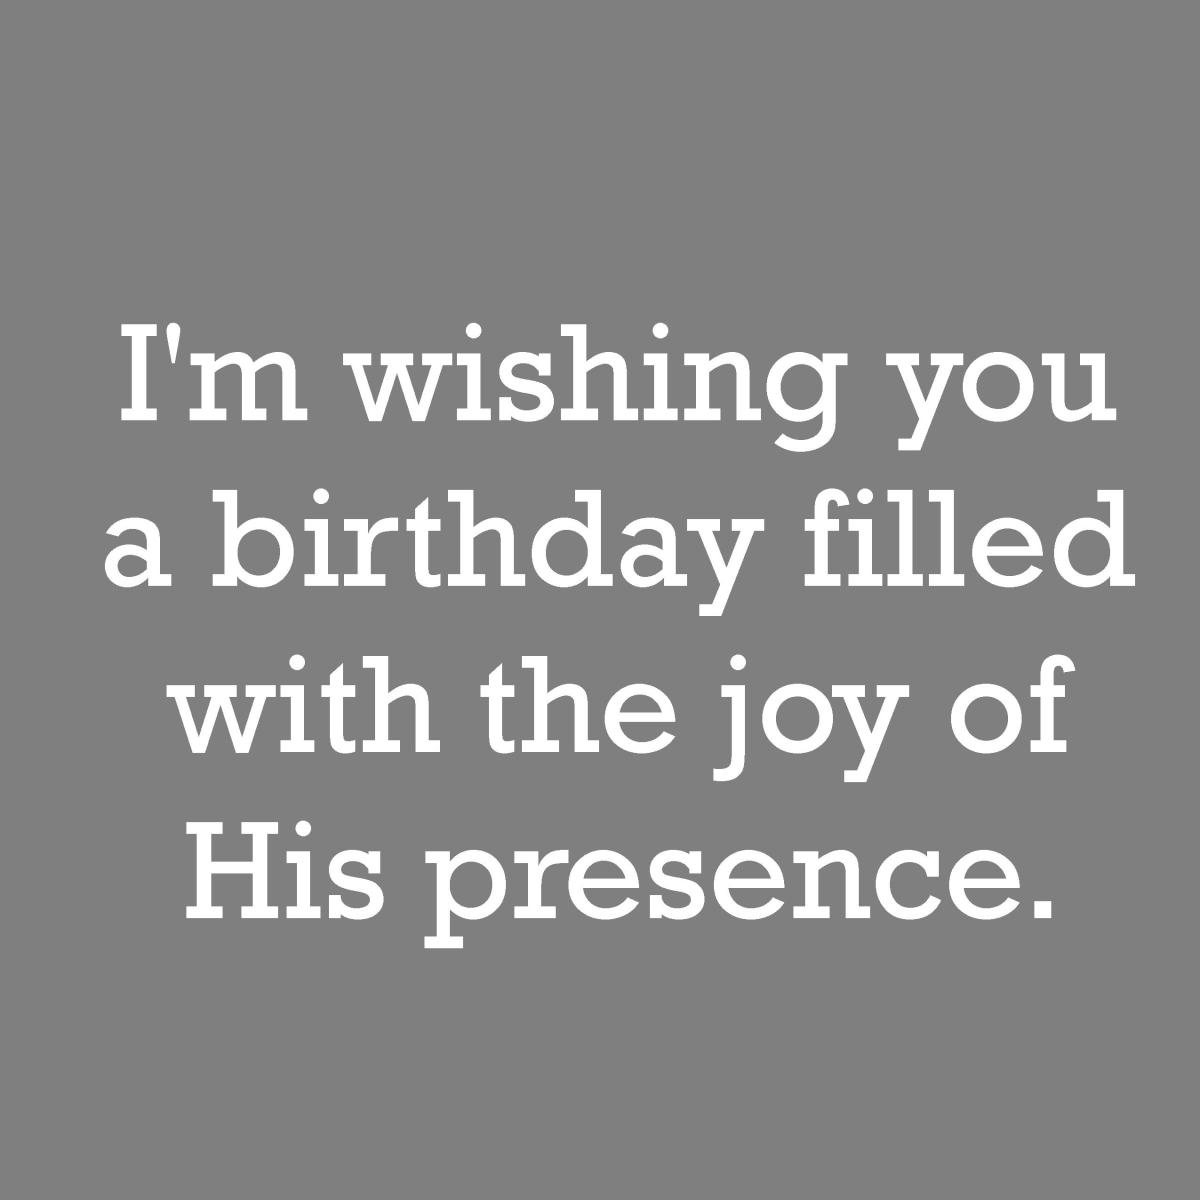 This is a much better way of saying happy birthday.